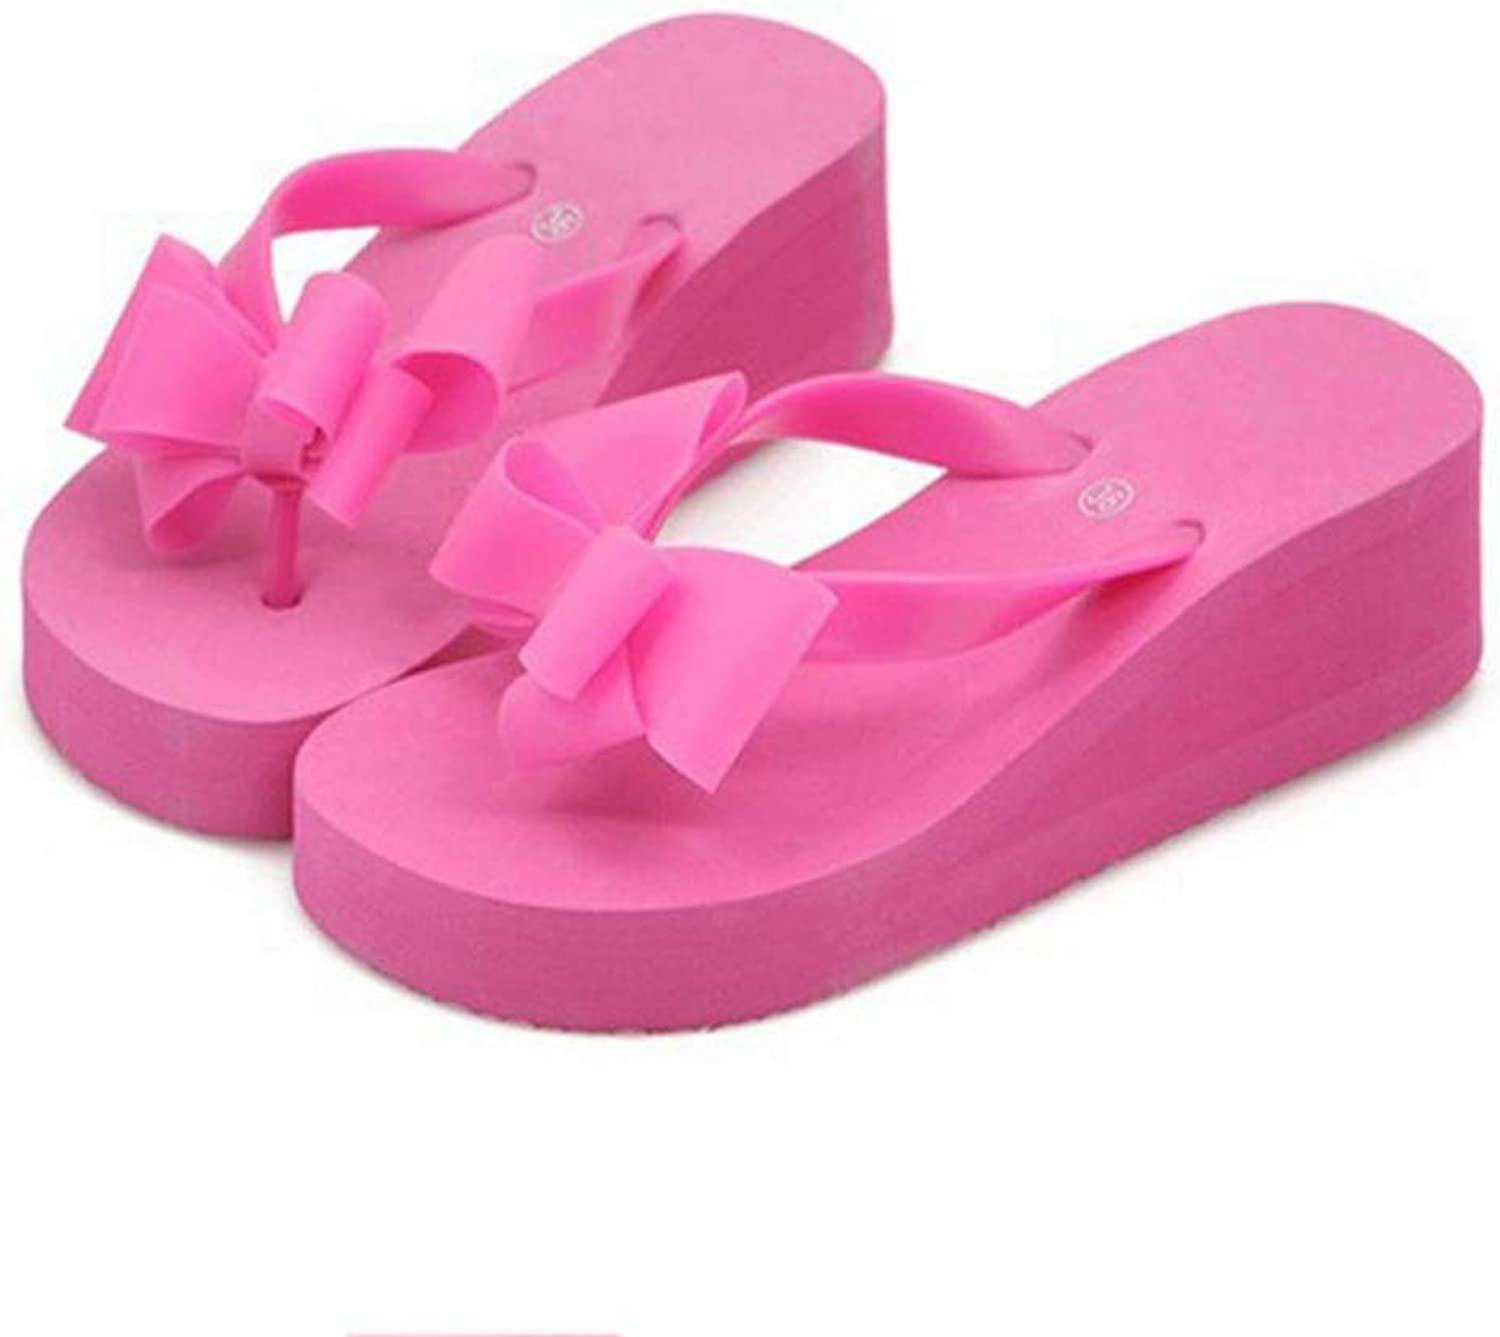 T-JULY Beach Sandals for Women Fashion Platform Mid Heel shoes Bowknot Slippers